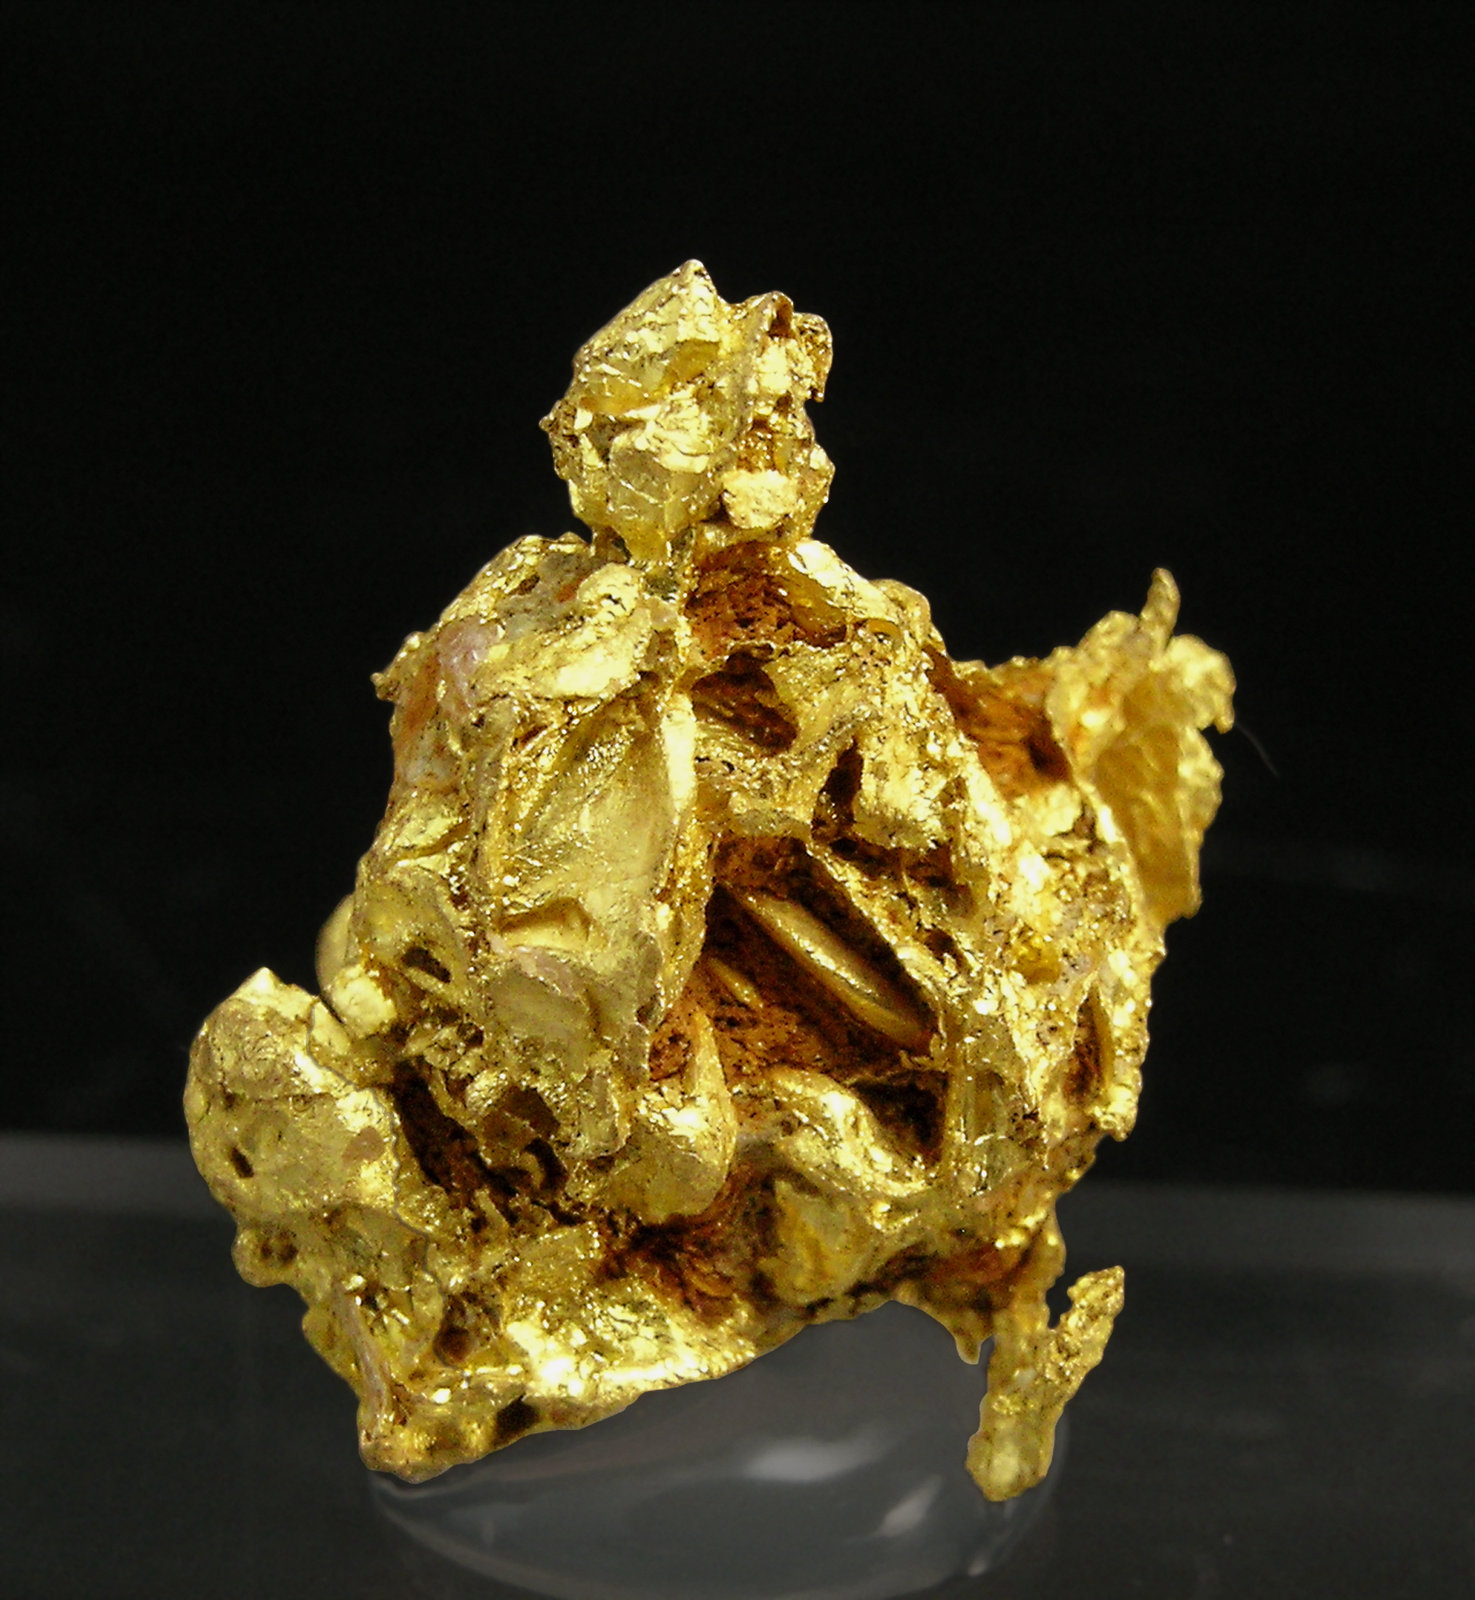 specimens/s_imagesQ0/Gold-MG92Q0r.jpg